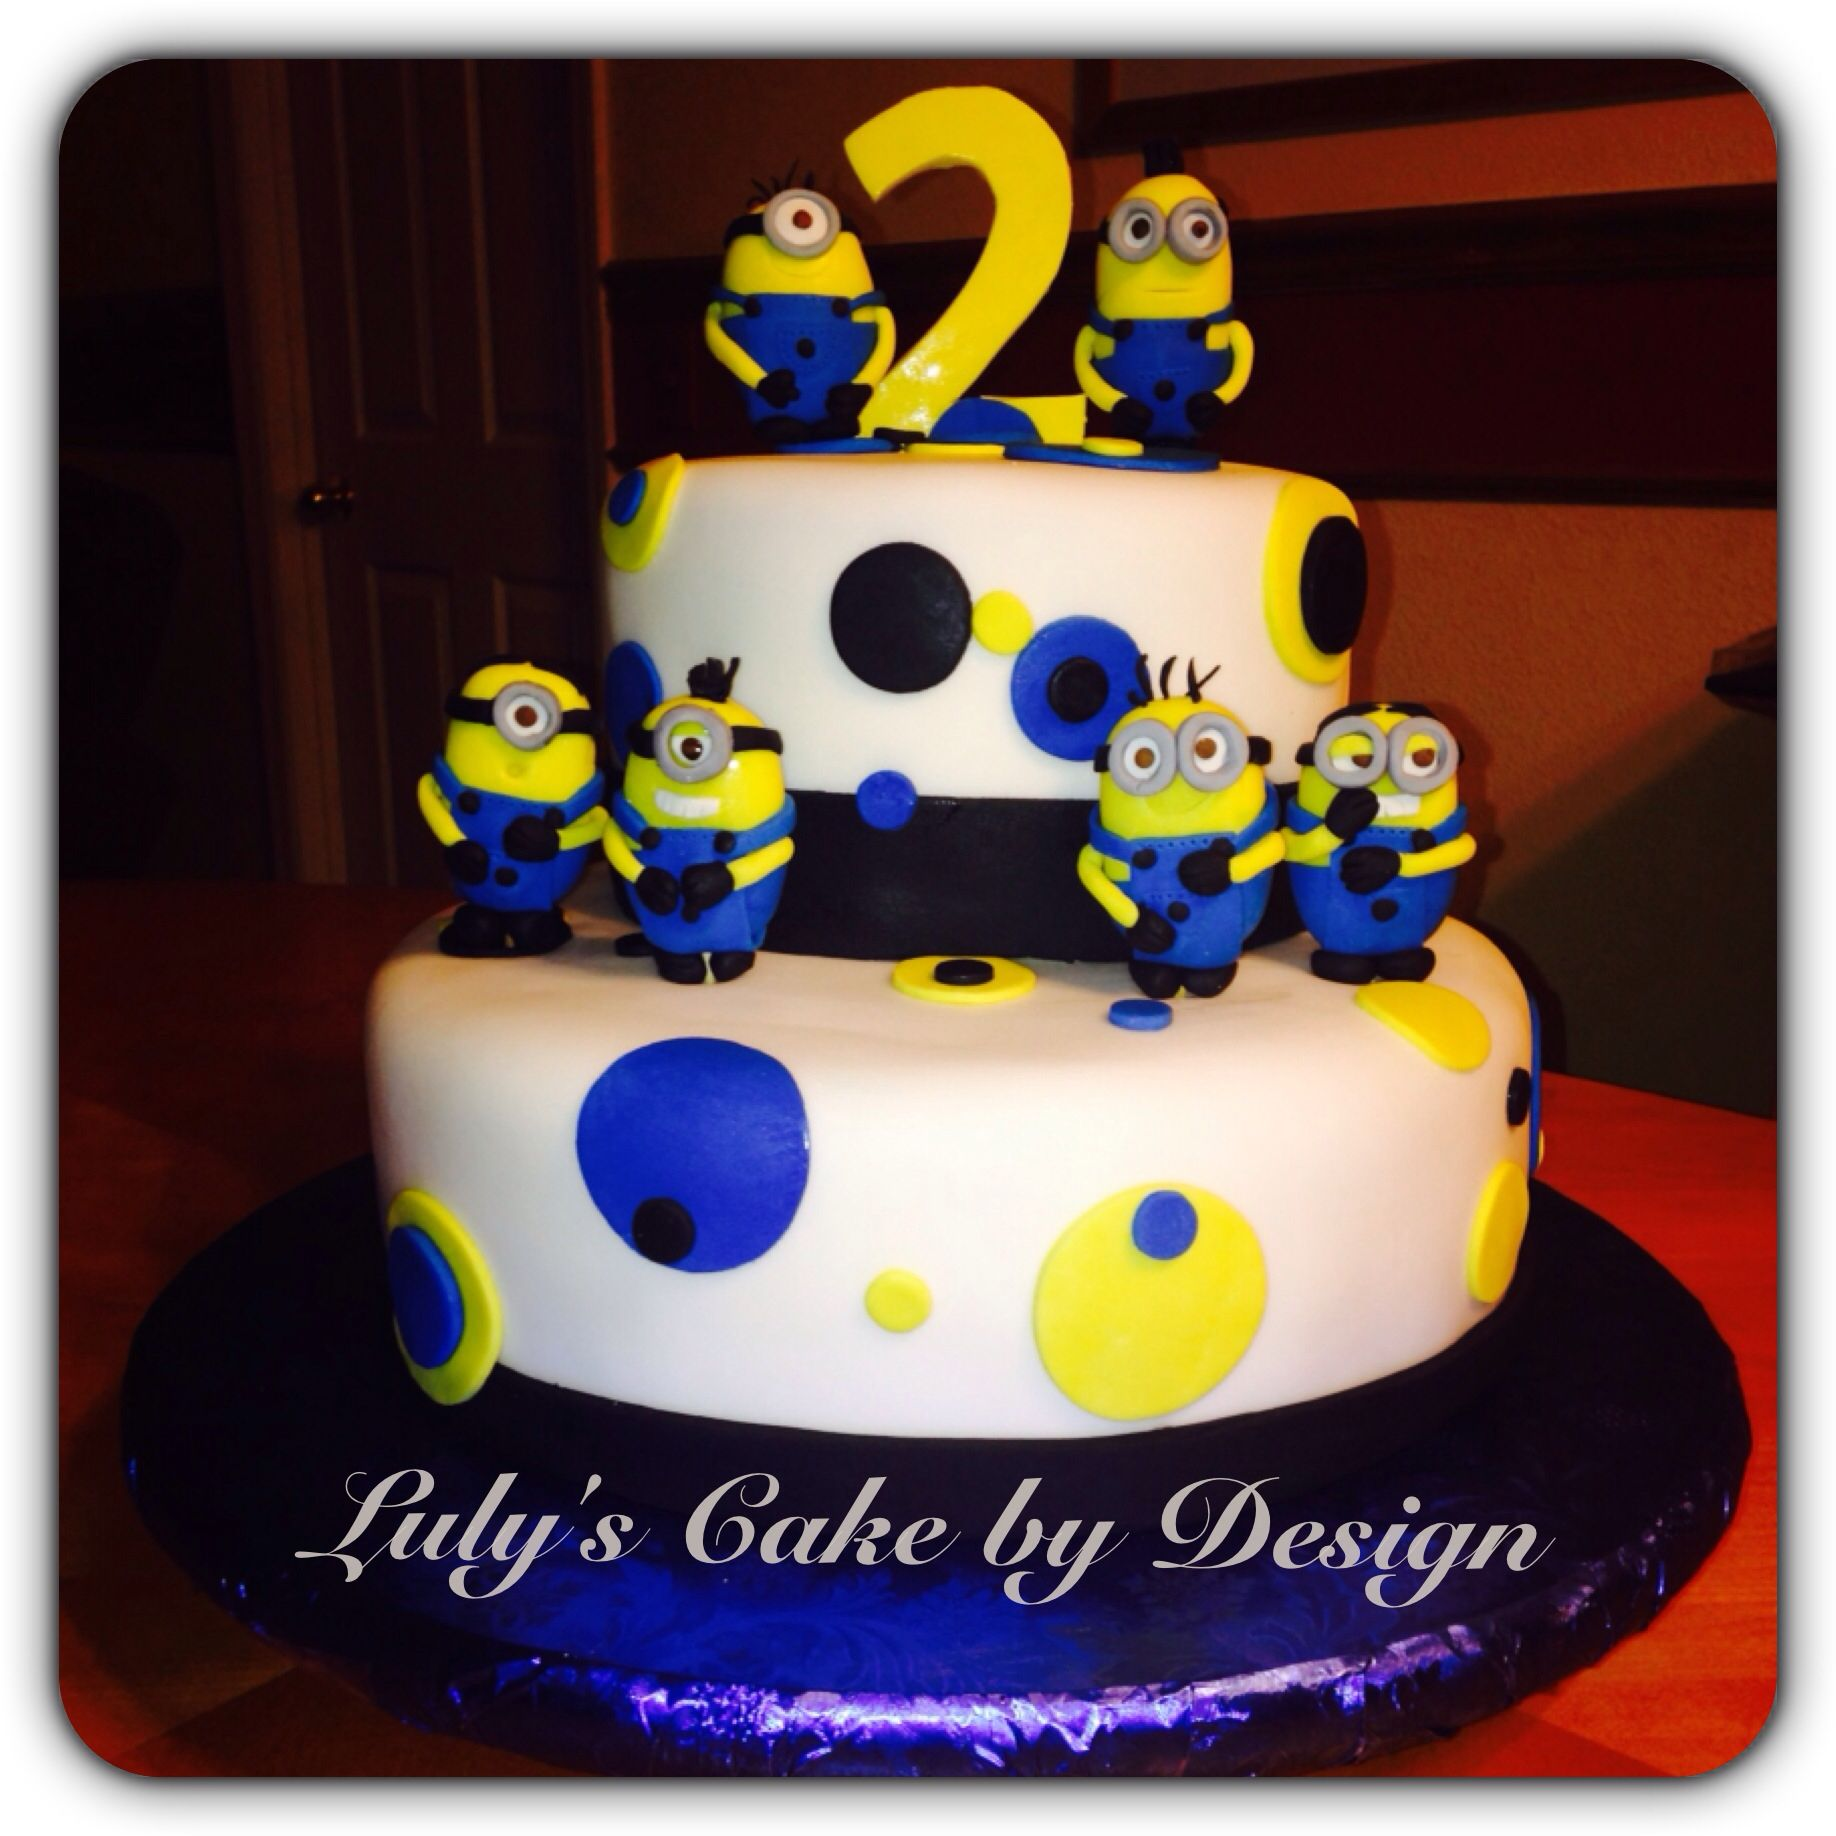 Strange Despicable Me Minions Birthday Cake With Images Minion Funny Birthday Cards Online Barepcheapnameinfo